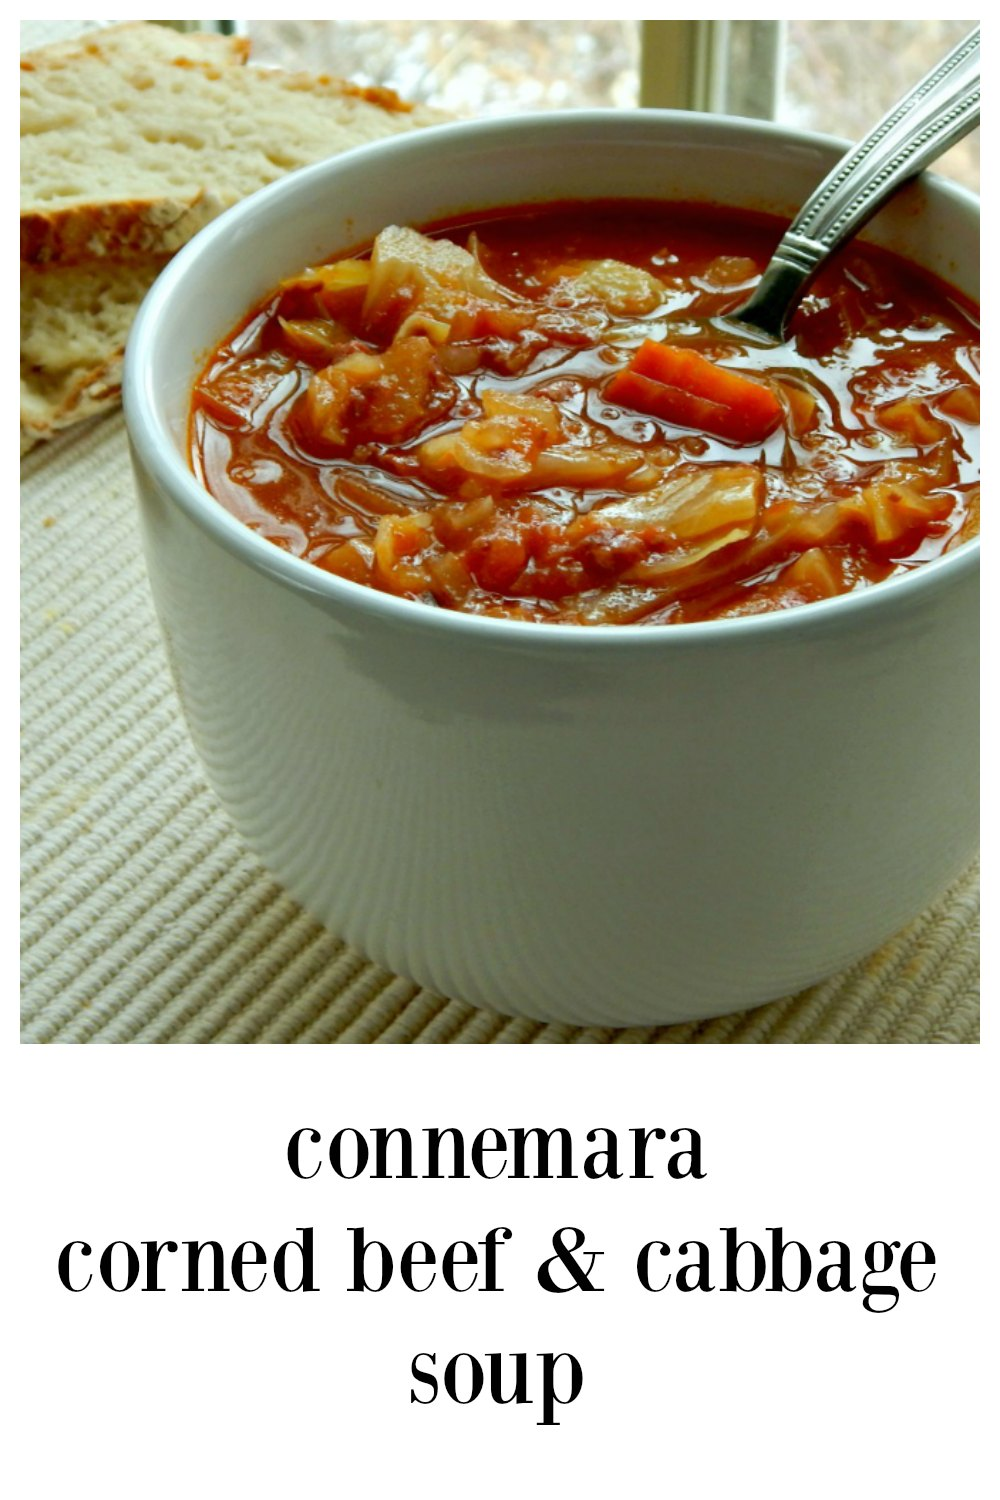 If there was ever any reason to hoard your corned beef, Connemara Corned Beef Cabbage Soup has GOT to be it! It's so crave-worthy! #CornedBeefSoup #LeftoverCornedBeefSoup #LeftoverCornedBeef #Irish Recipe #IrishSoup